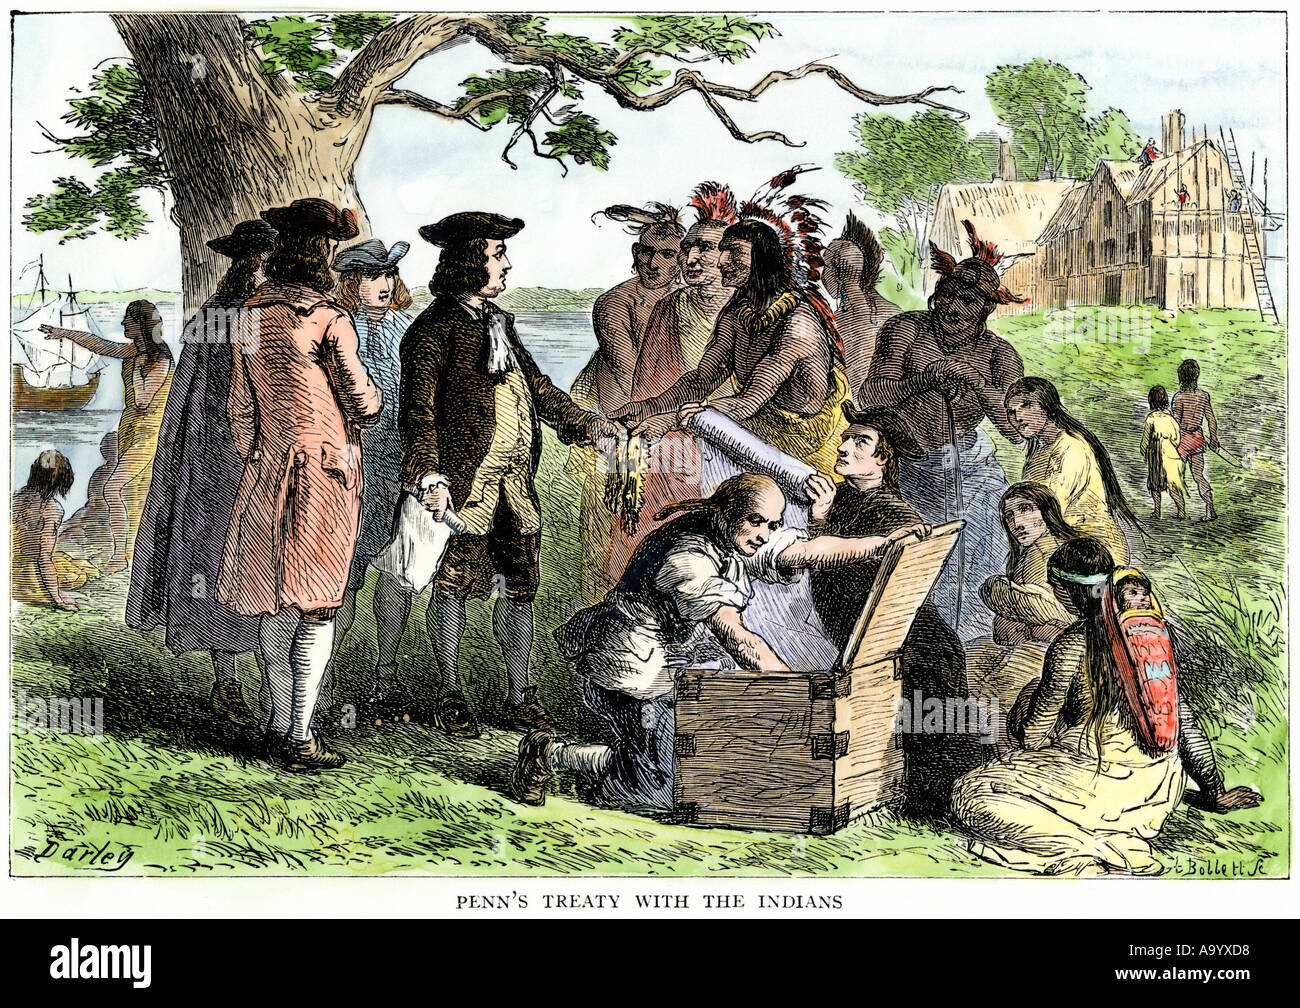 William Penn treaty with Native Americans in Pennsylvania 1680s. Hand-colored woodcut - Stock Image